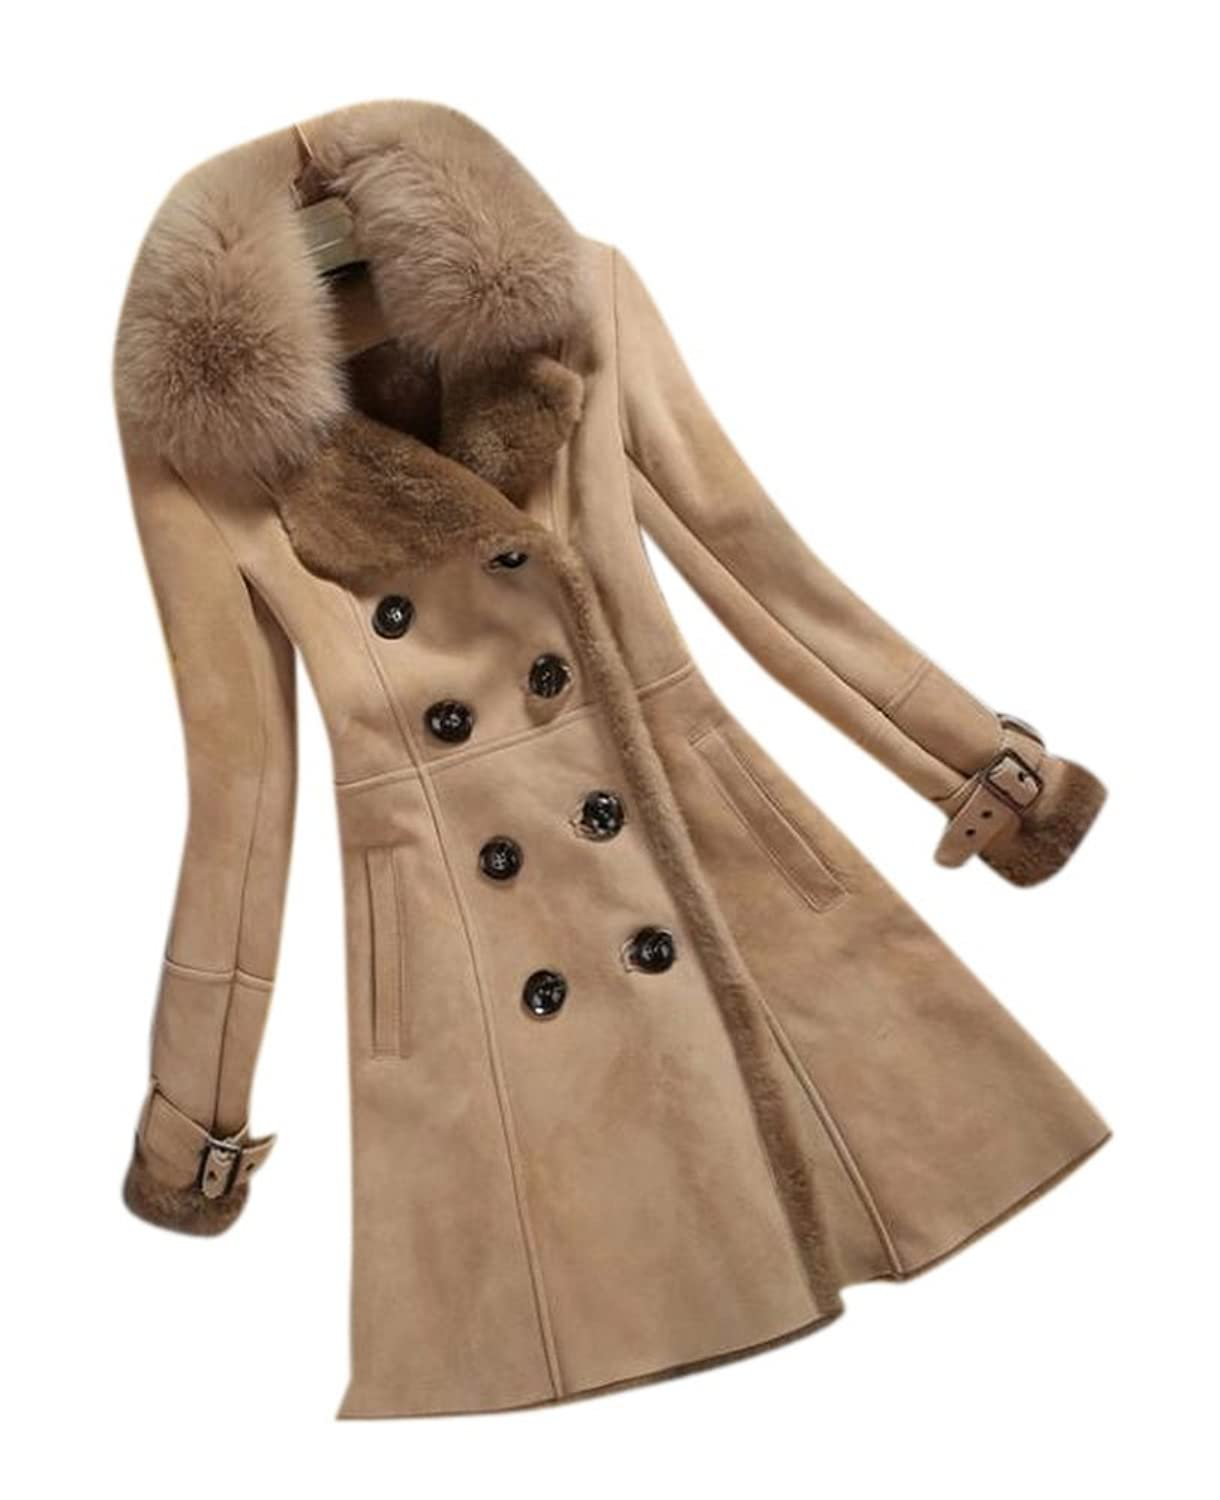 Allbebe Women's Winter Thicken Long Faux Fur Shearling Coat with ...